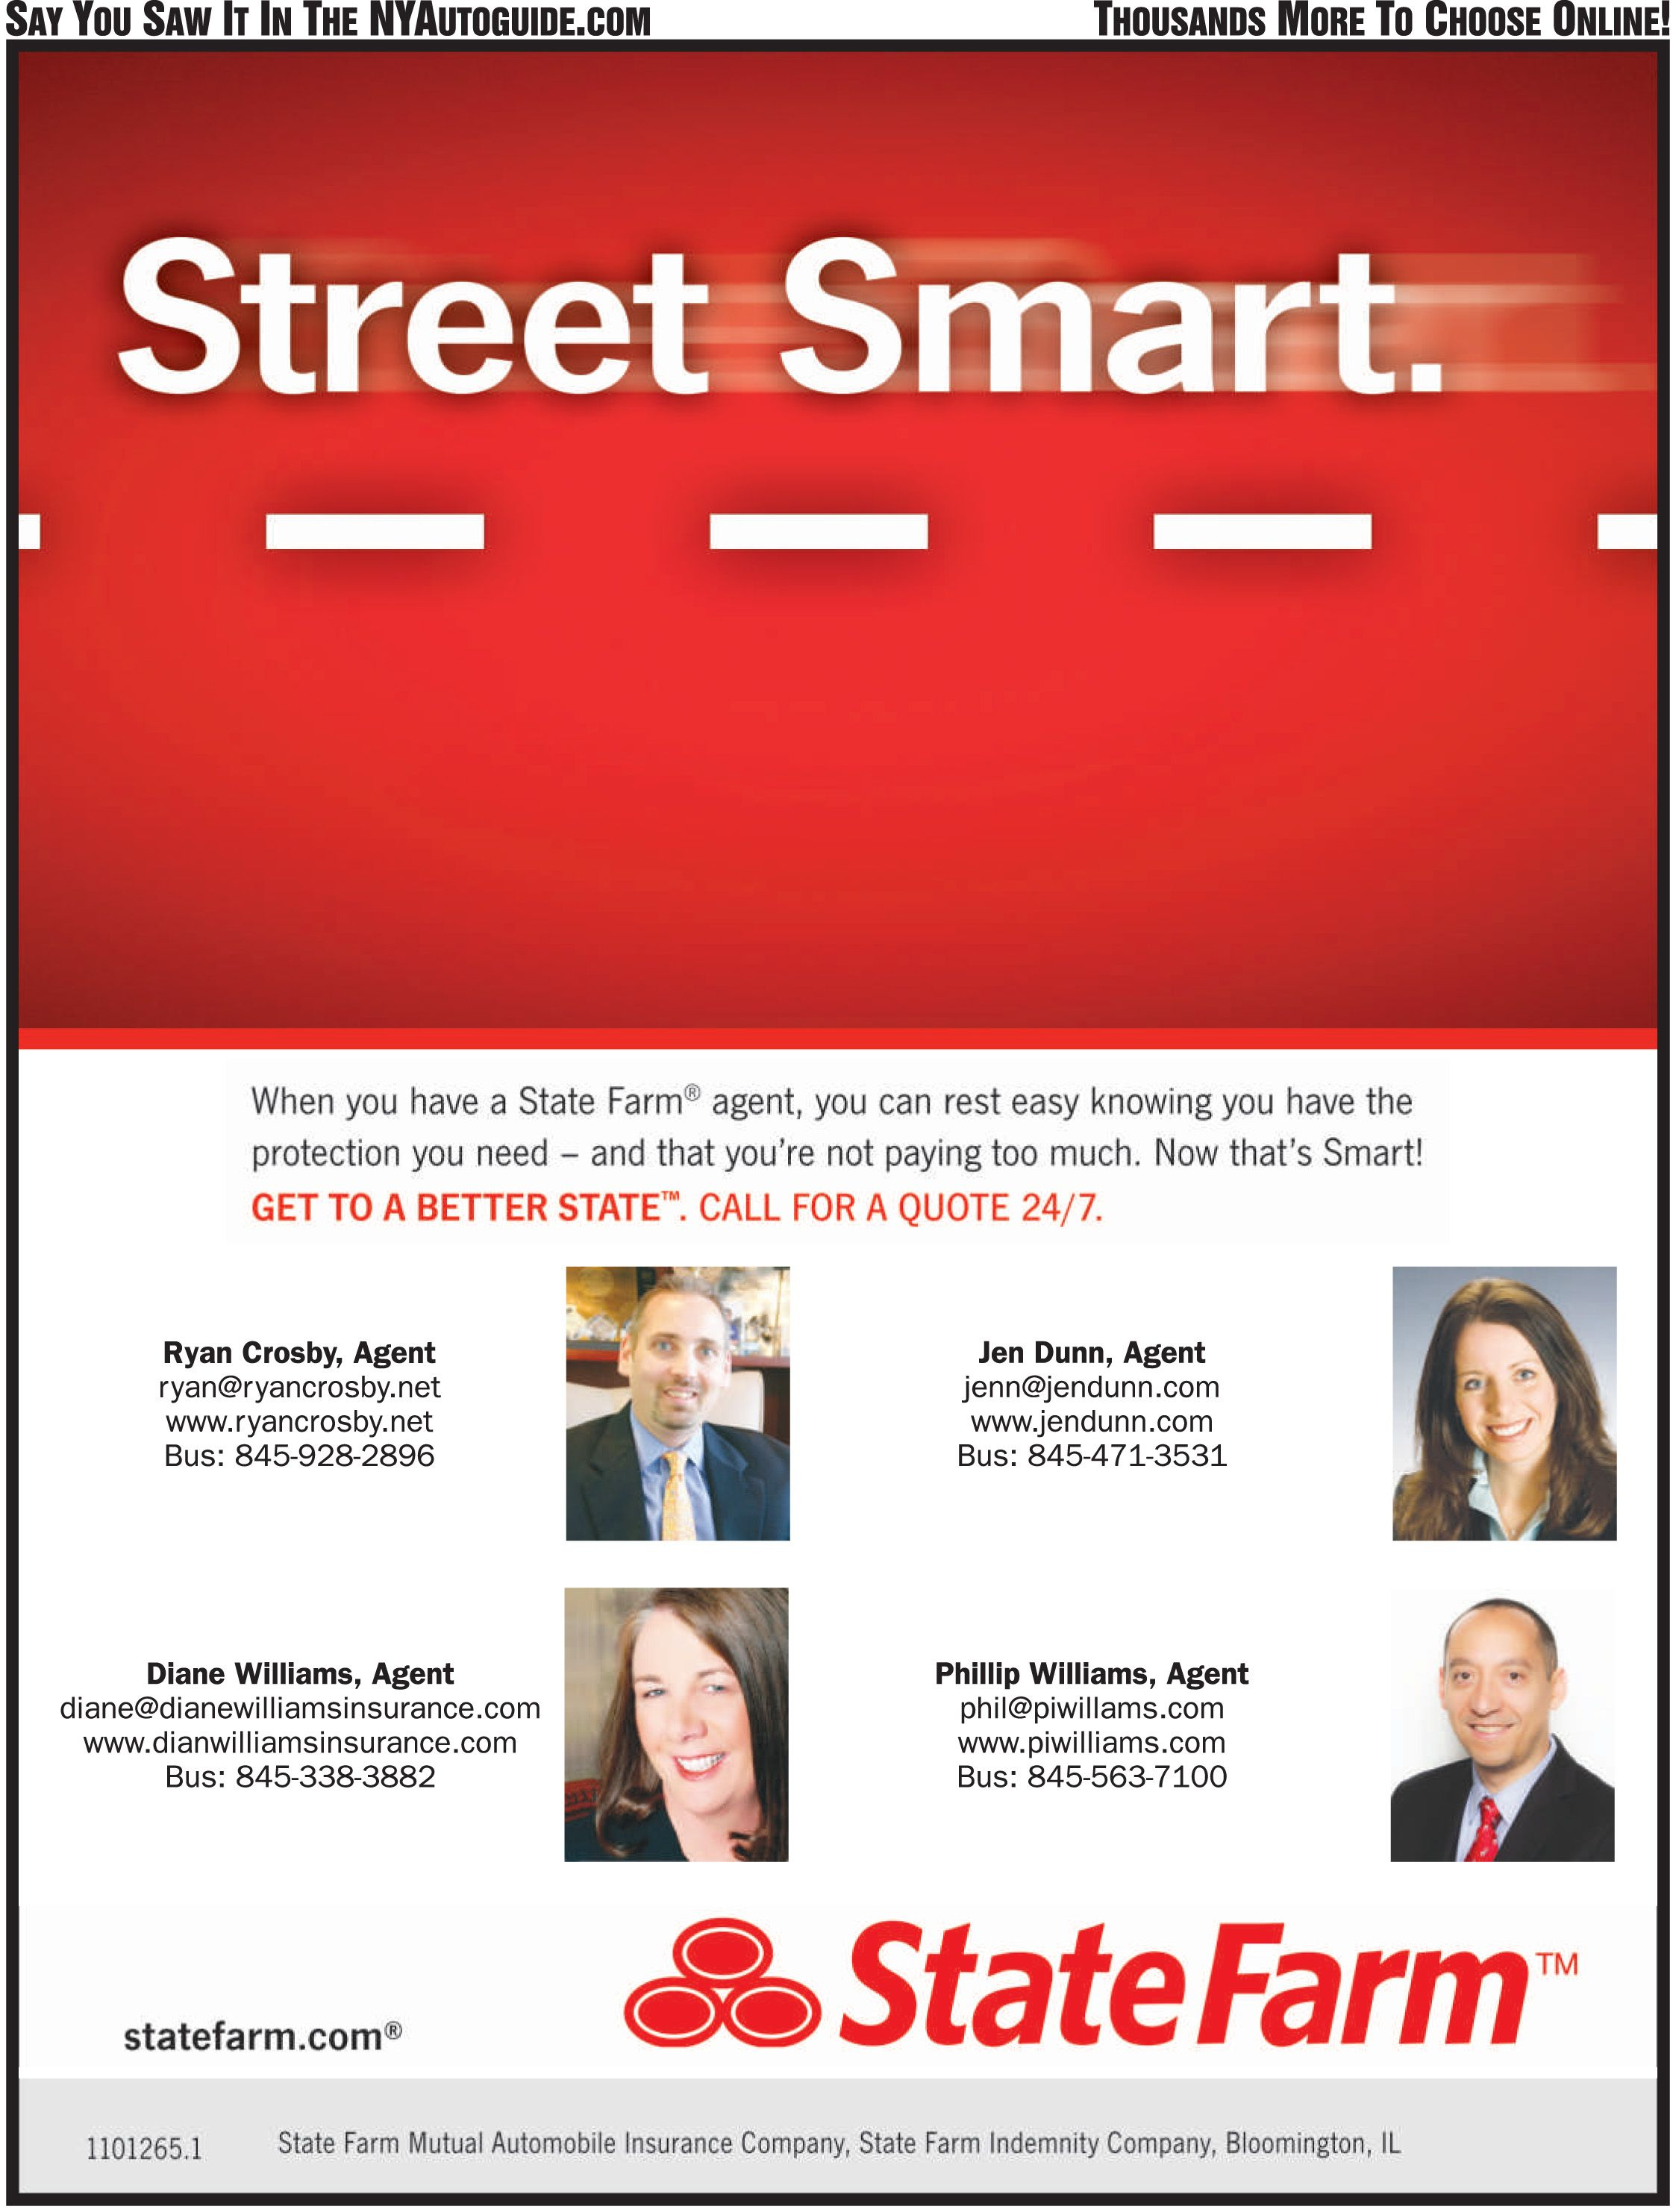 StateFarm Insurance, and GREAT AGENTS - call 855-803-5510 today for a quote, and great service always!